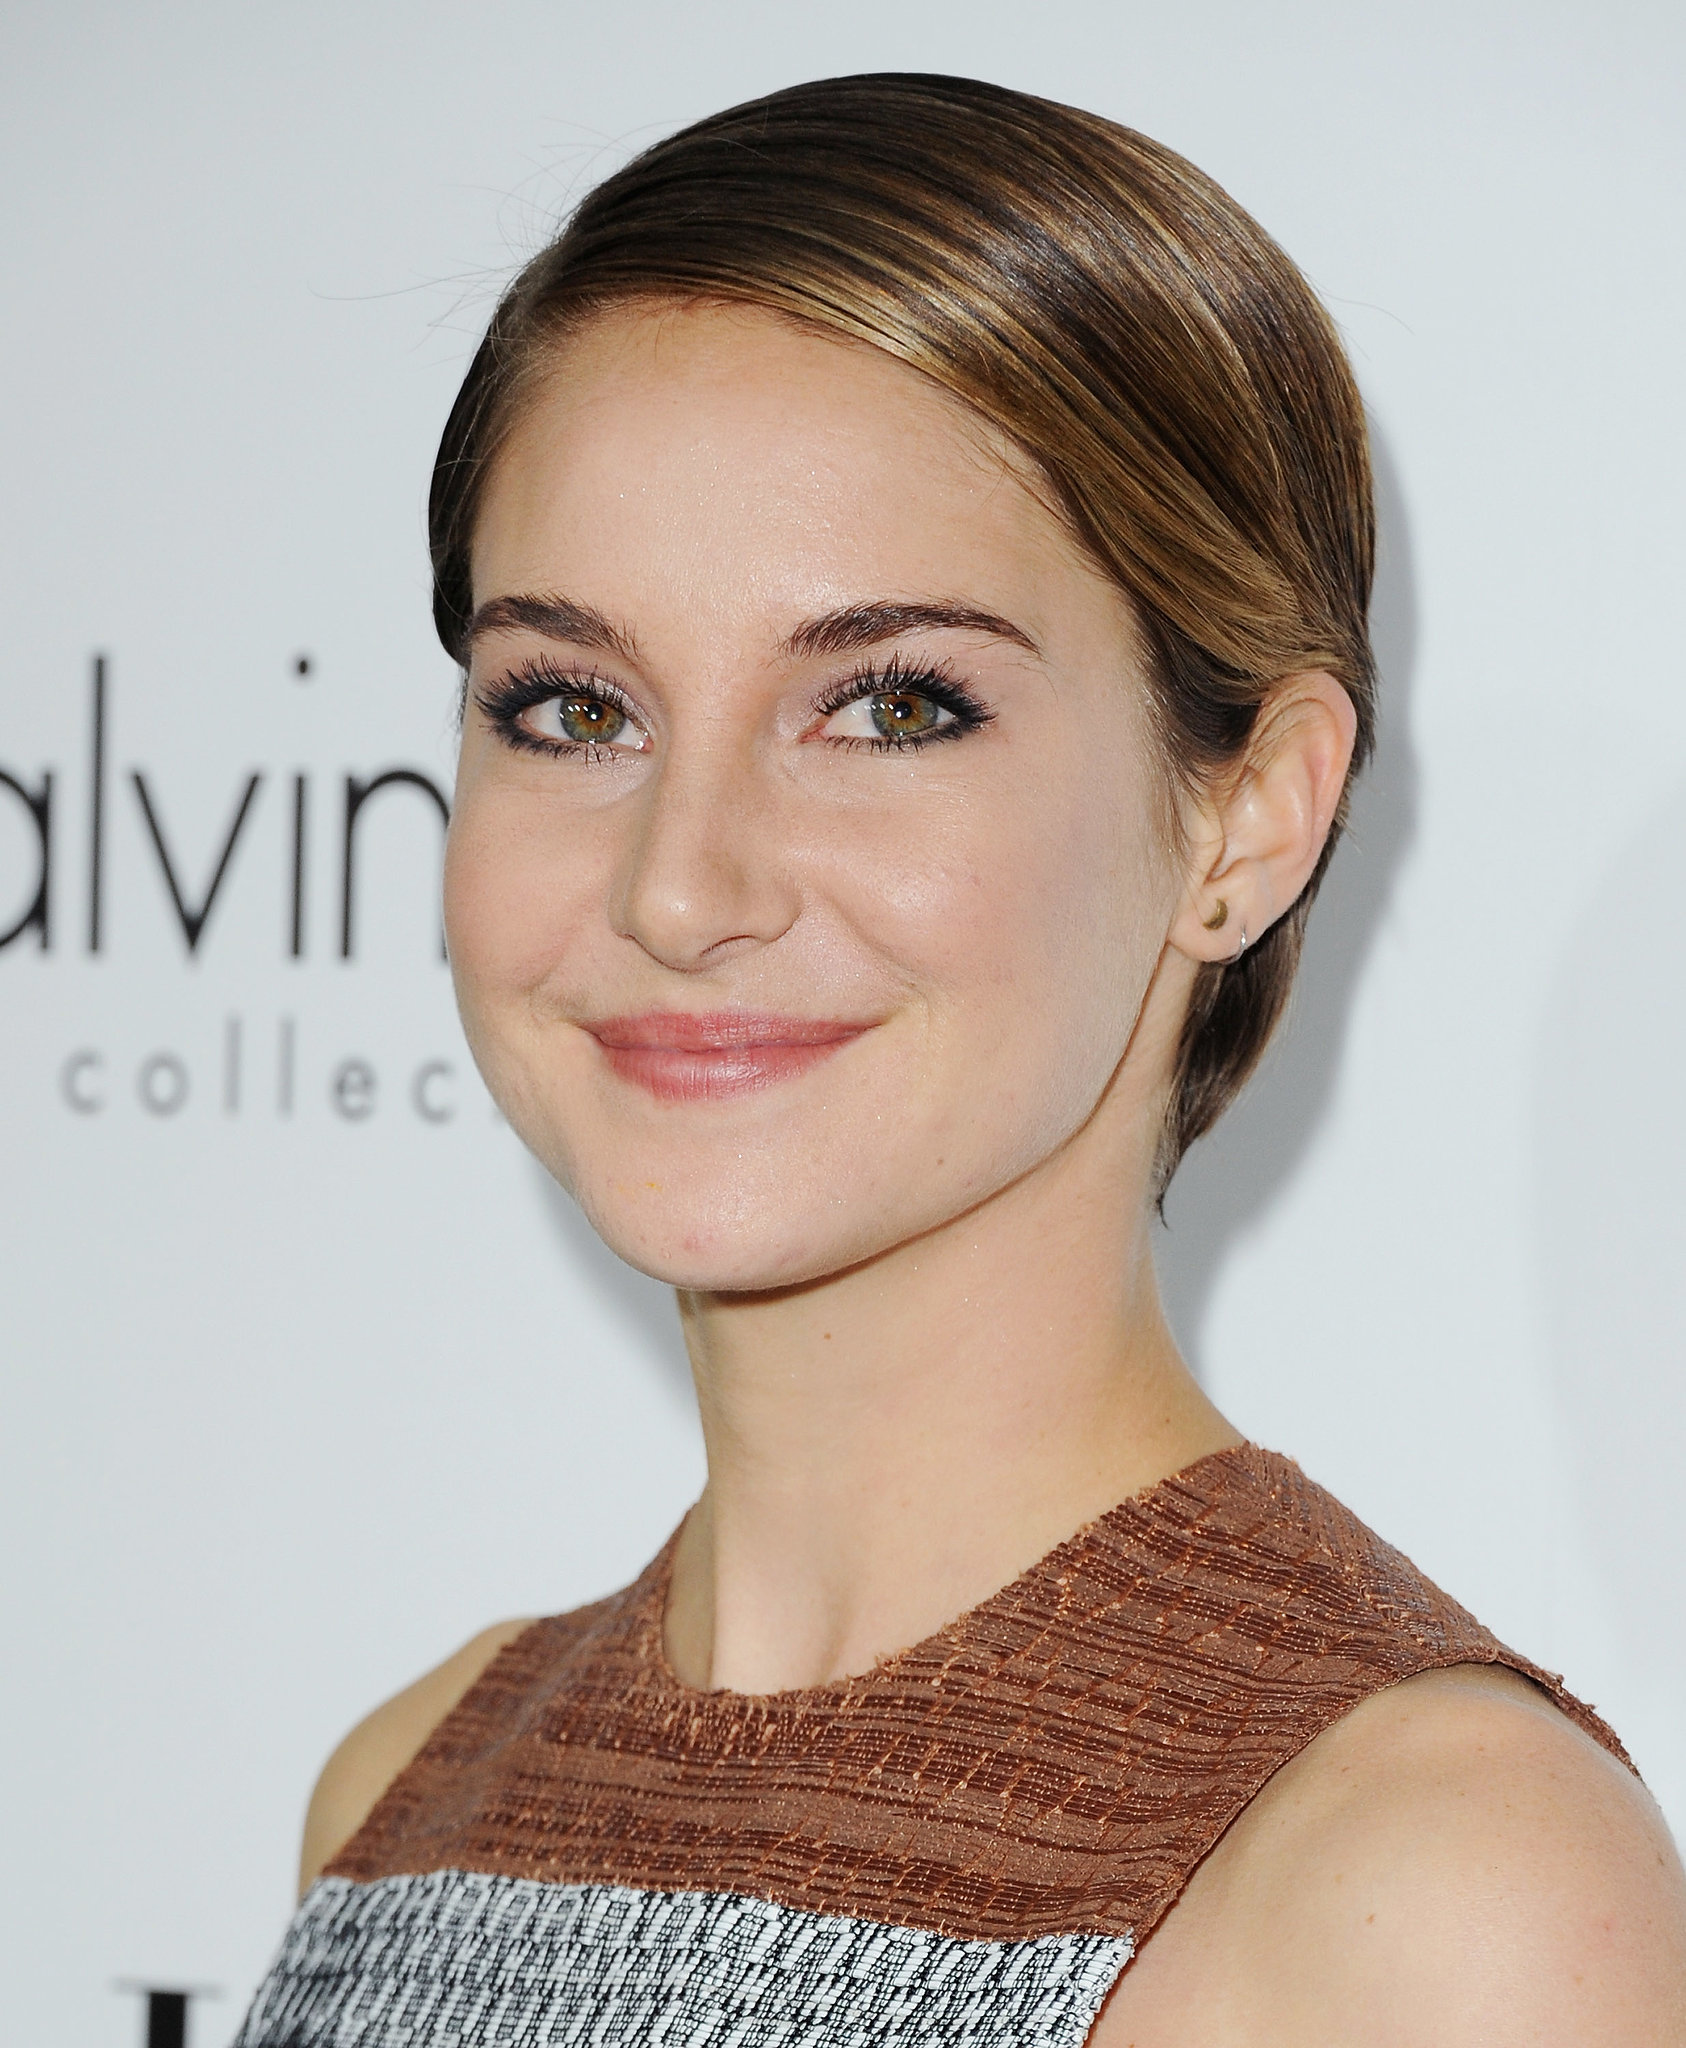 Shailene Woodley Debuted Her New Short Hair To The Fullest With A | Reese Goes Nude Lea Gets ...